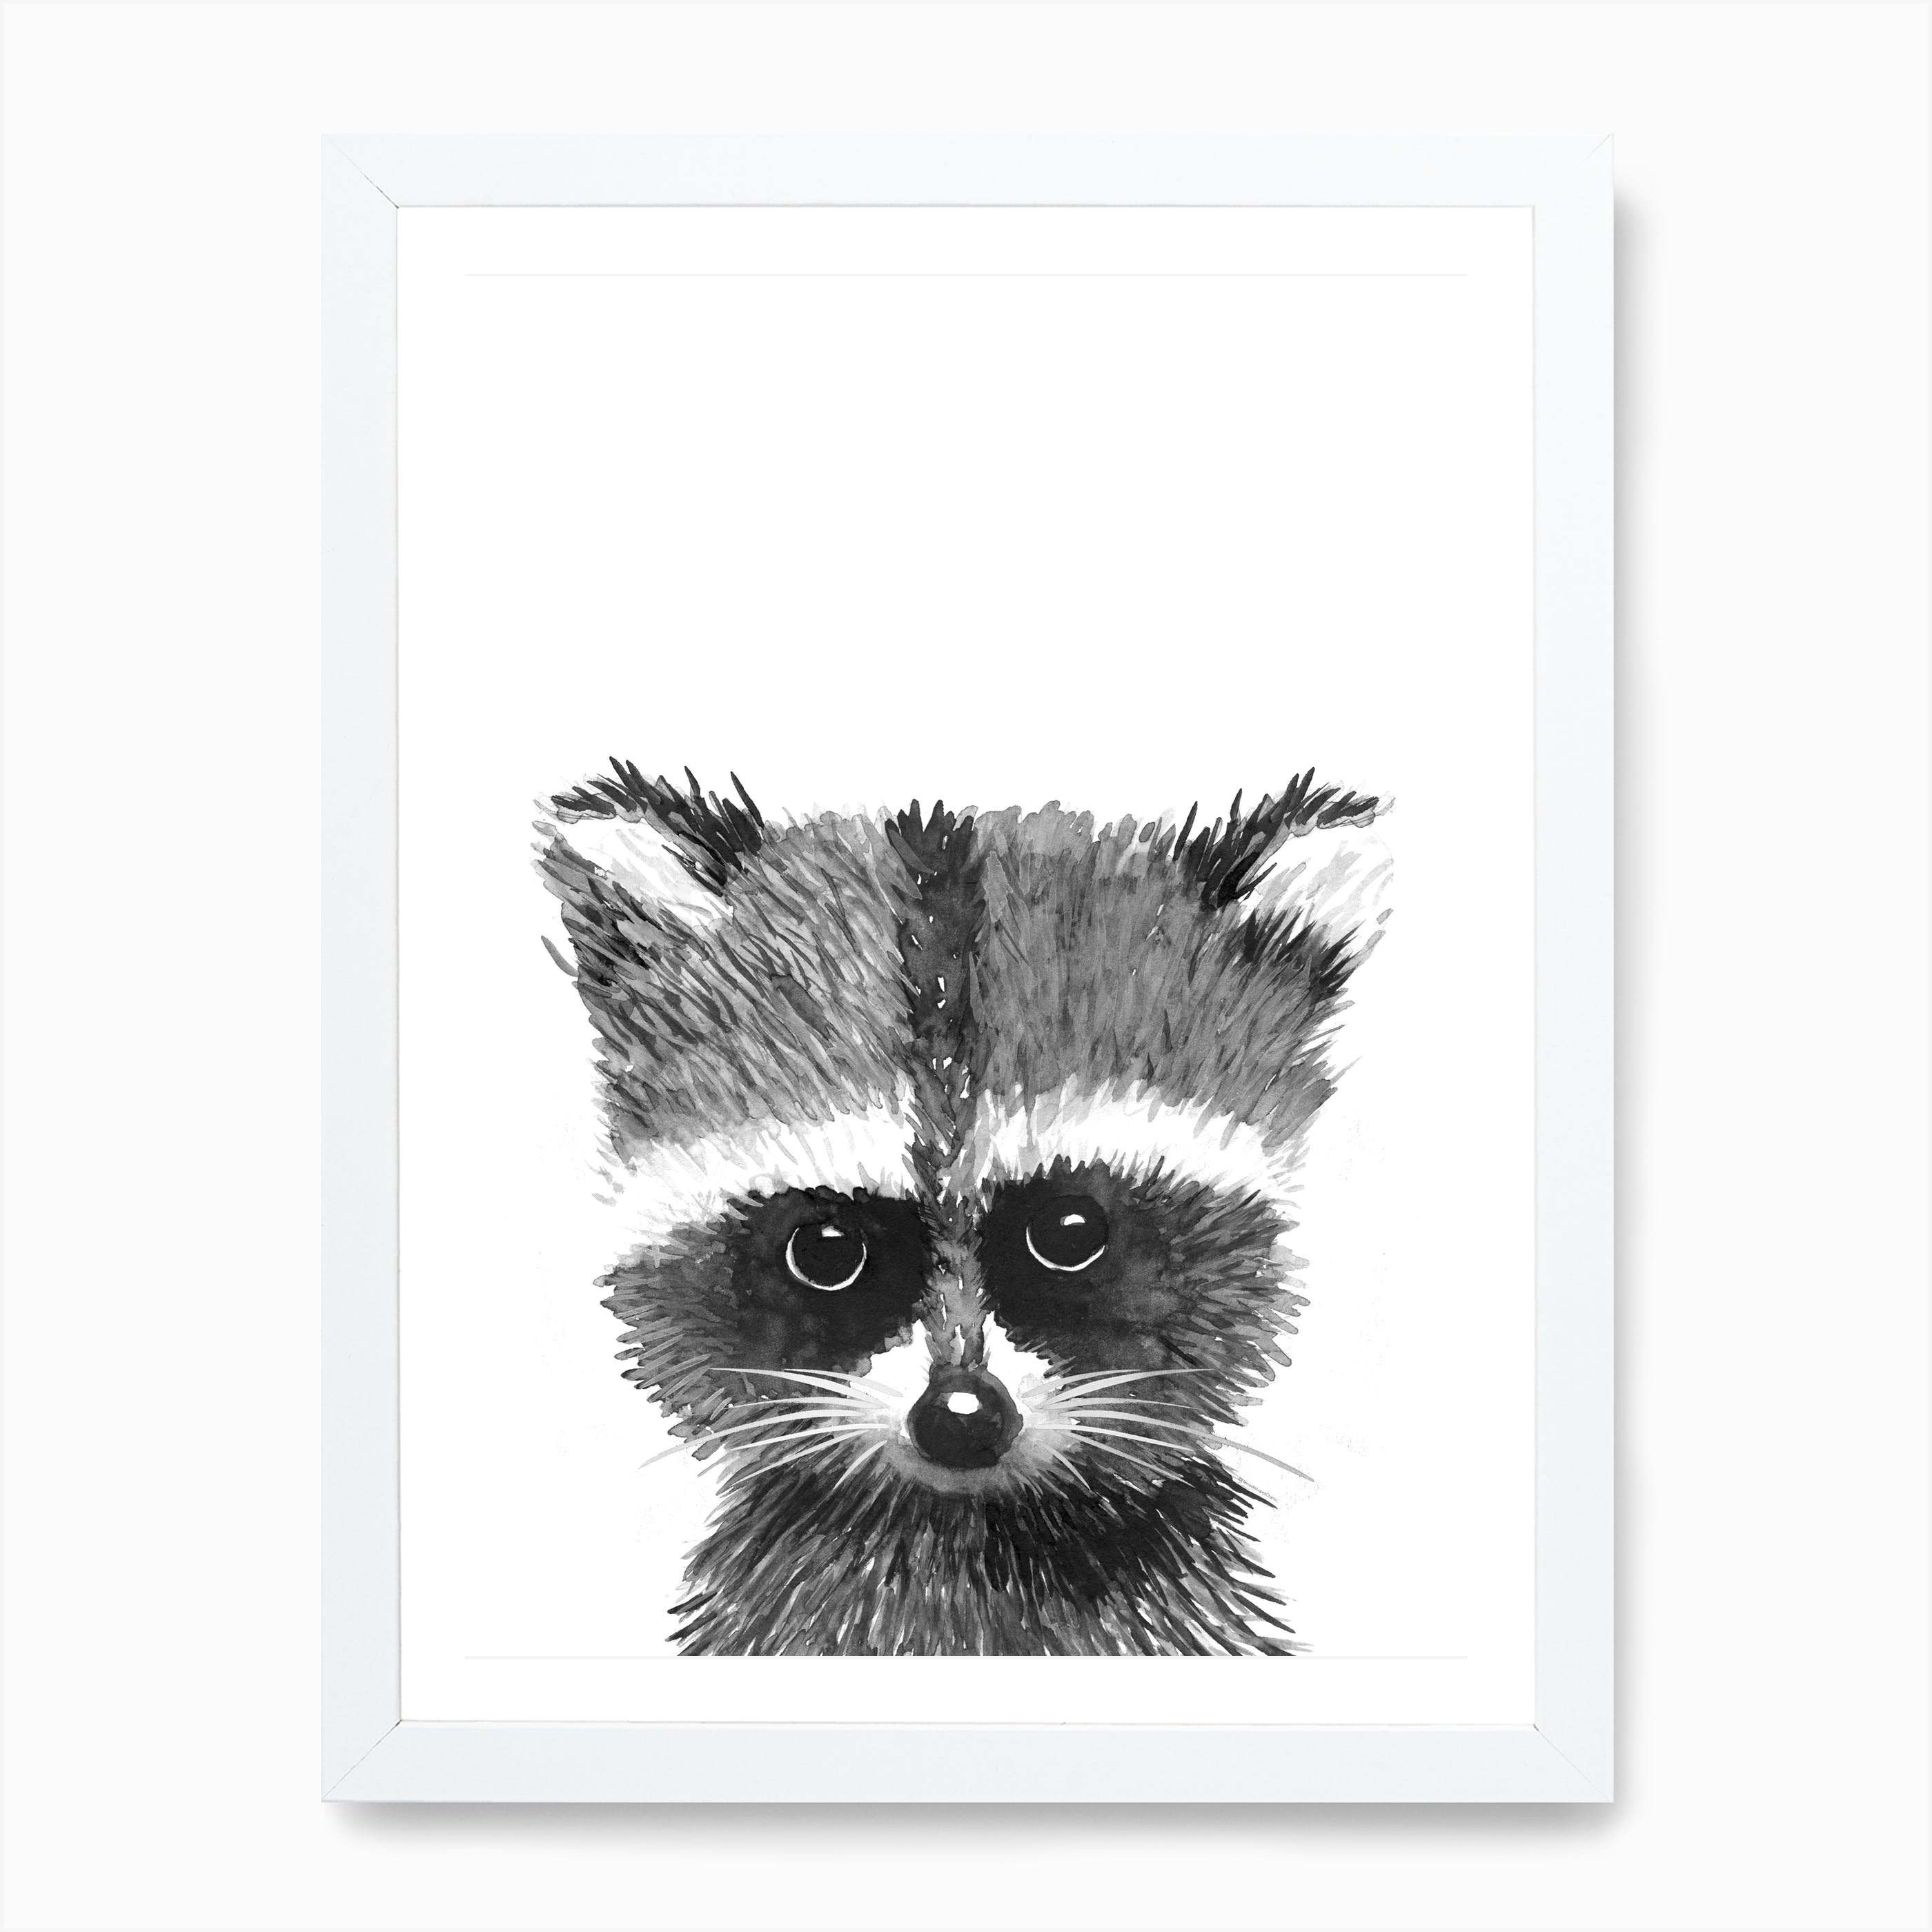 Racoon Portrait Canvas Picture Giclee Print Unframed Home Decor Wall Art